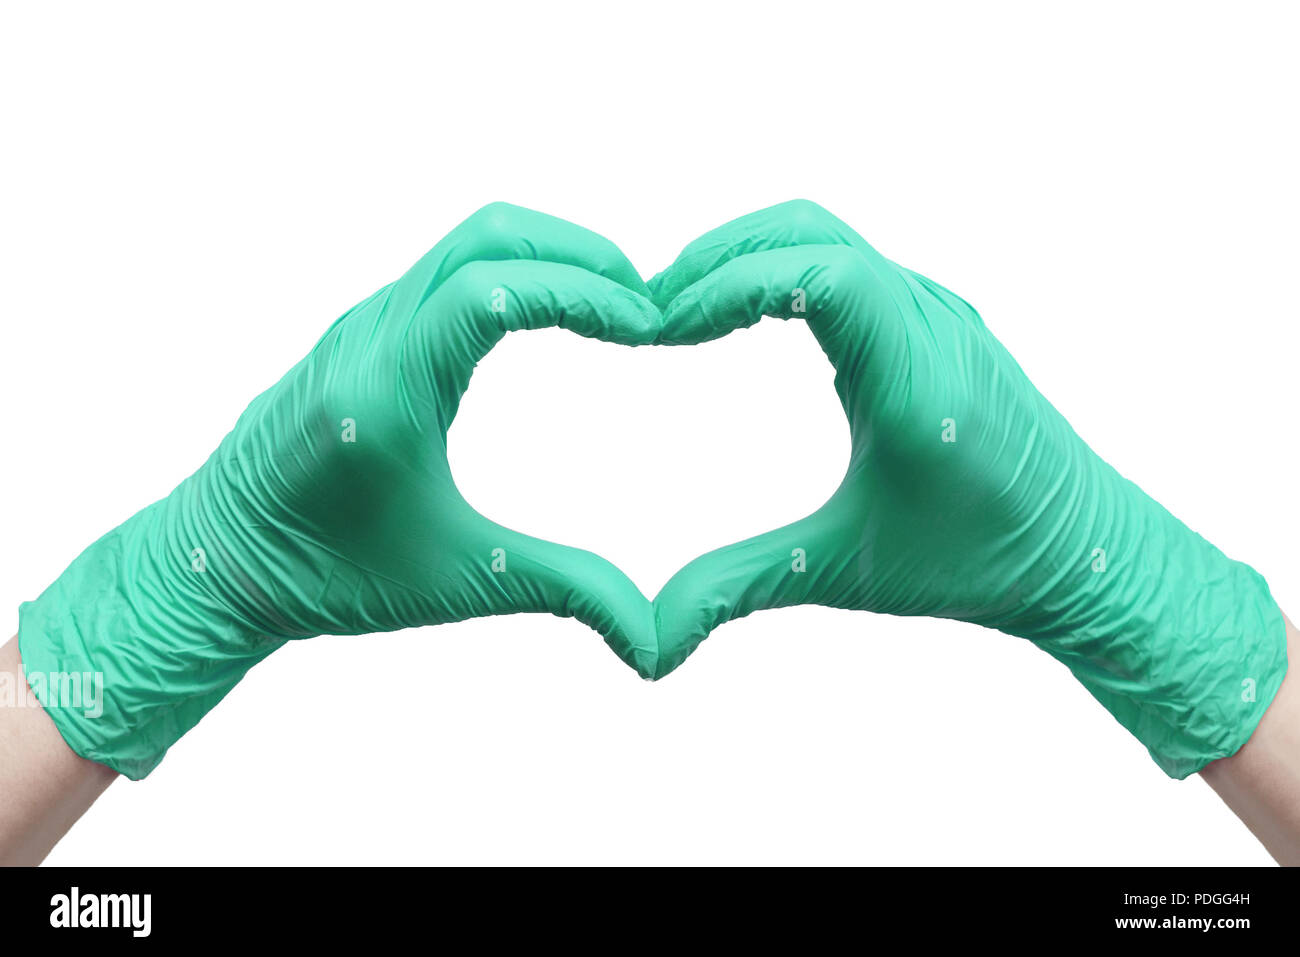 Heart made of green medical gloves, Healthy lifestyle, benefits of vitamins, vaccination, afraid of injections, medical store, pharmacy, presentation, Stock Photo